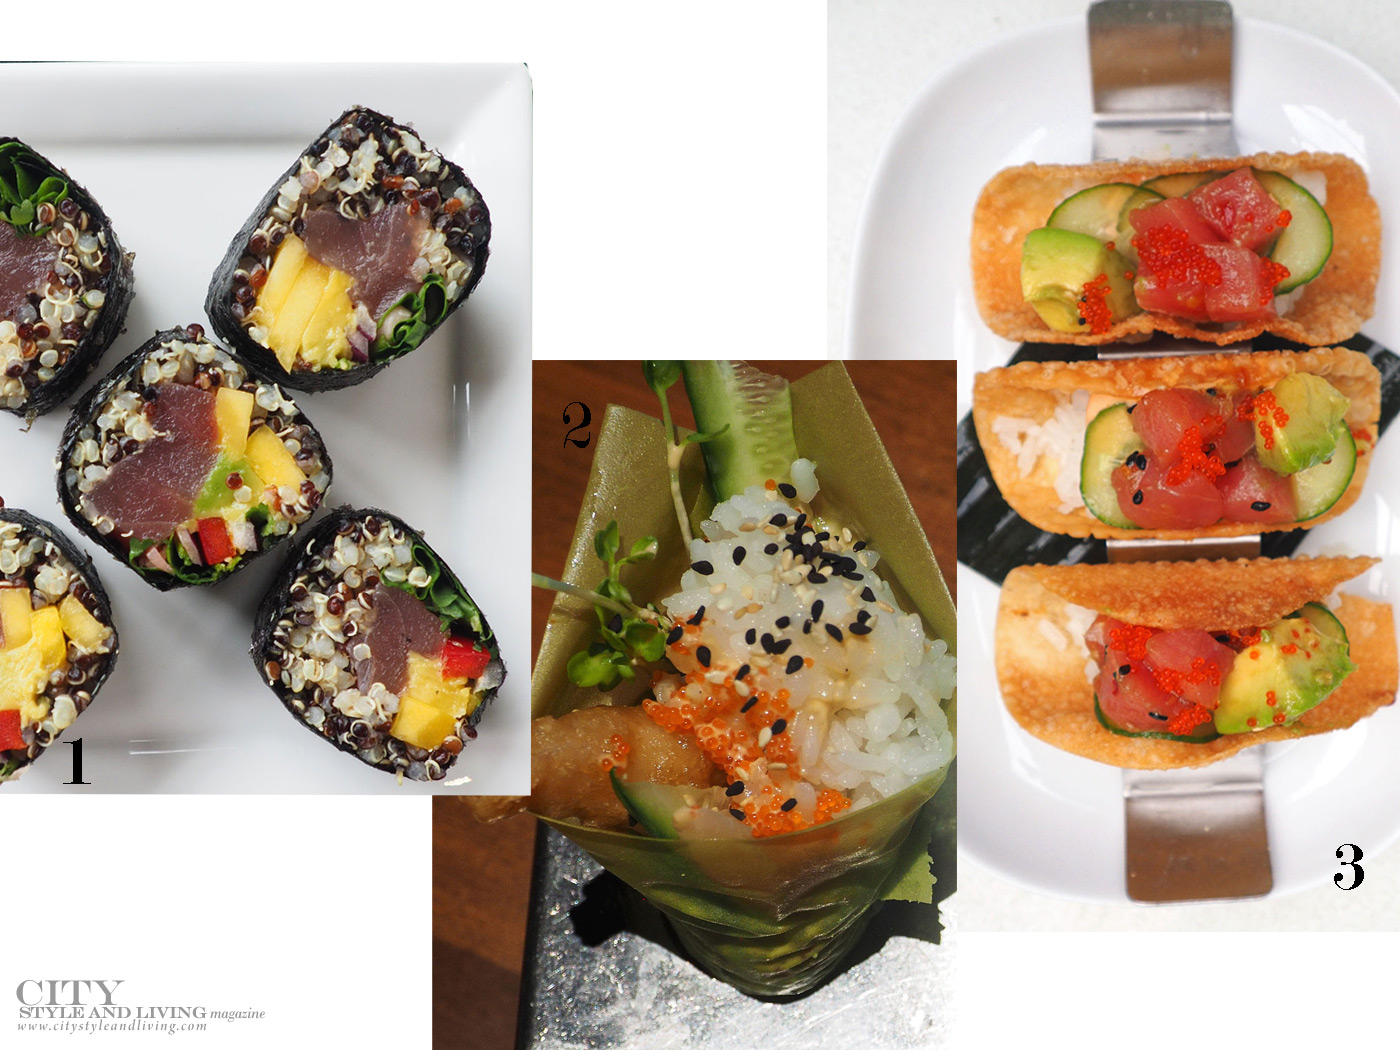 City Style and Living Magazine how to spice up asian meal